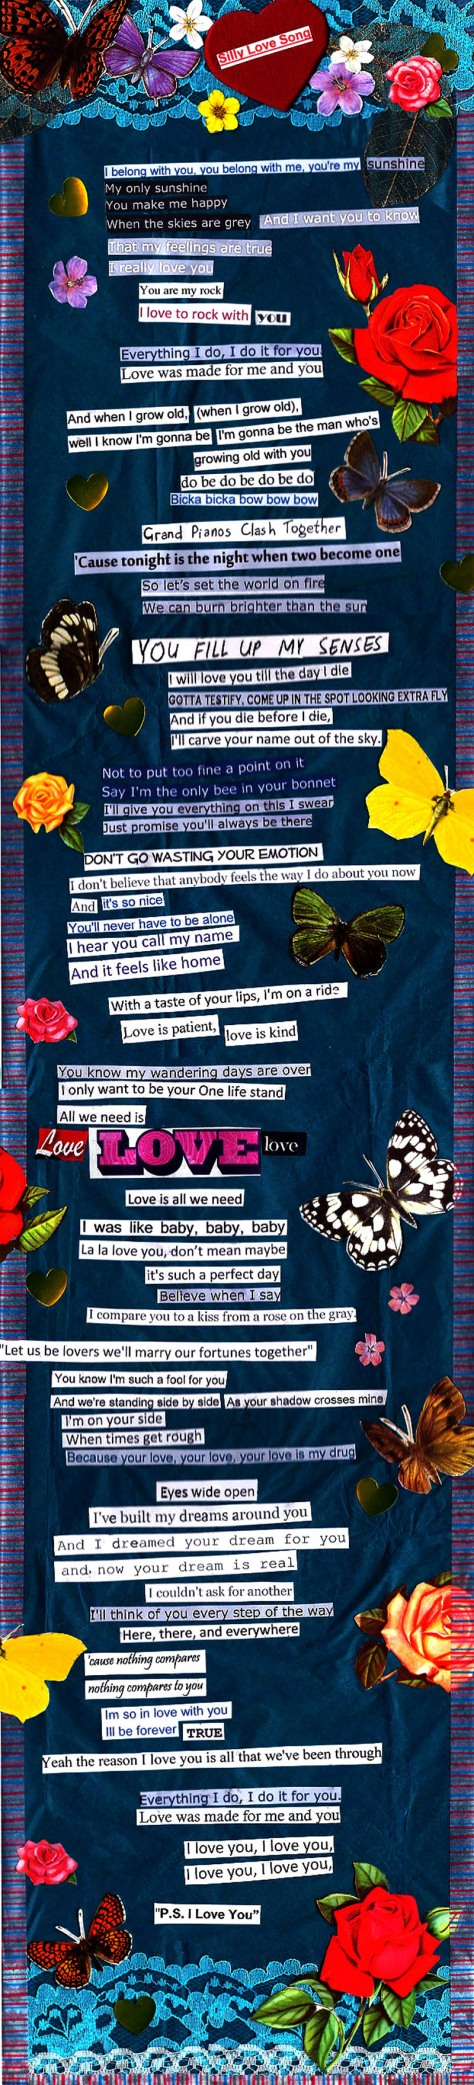 jenny robins - wedding - design - collage - silly love song - long version